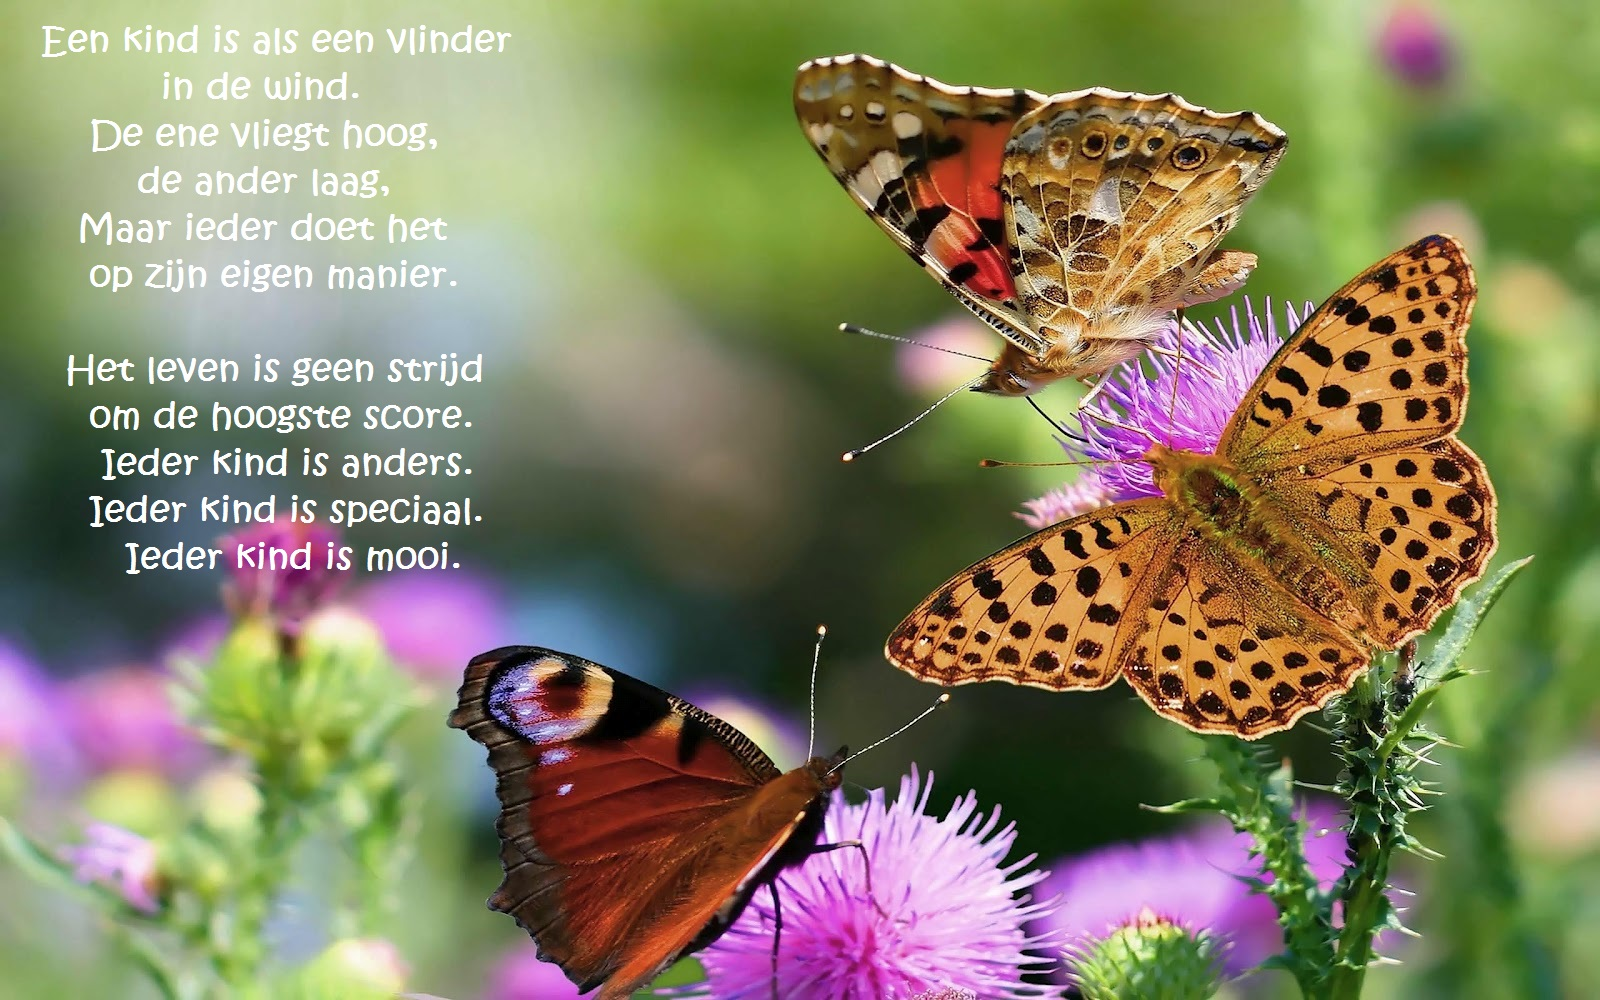 4website - vlinders - opgroeiend kind - Nederlands